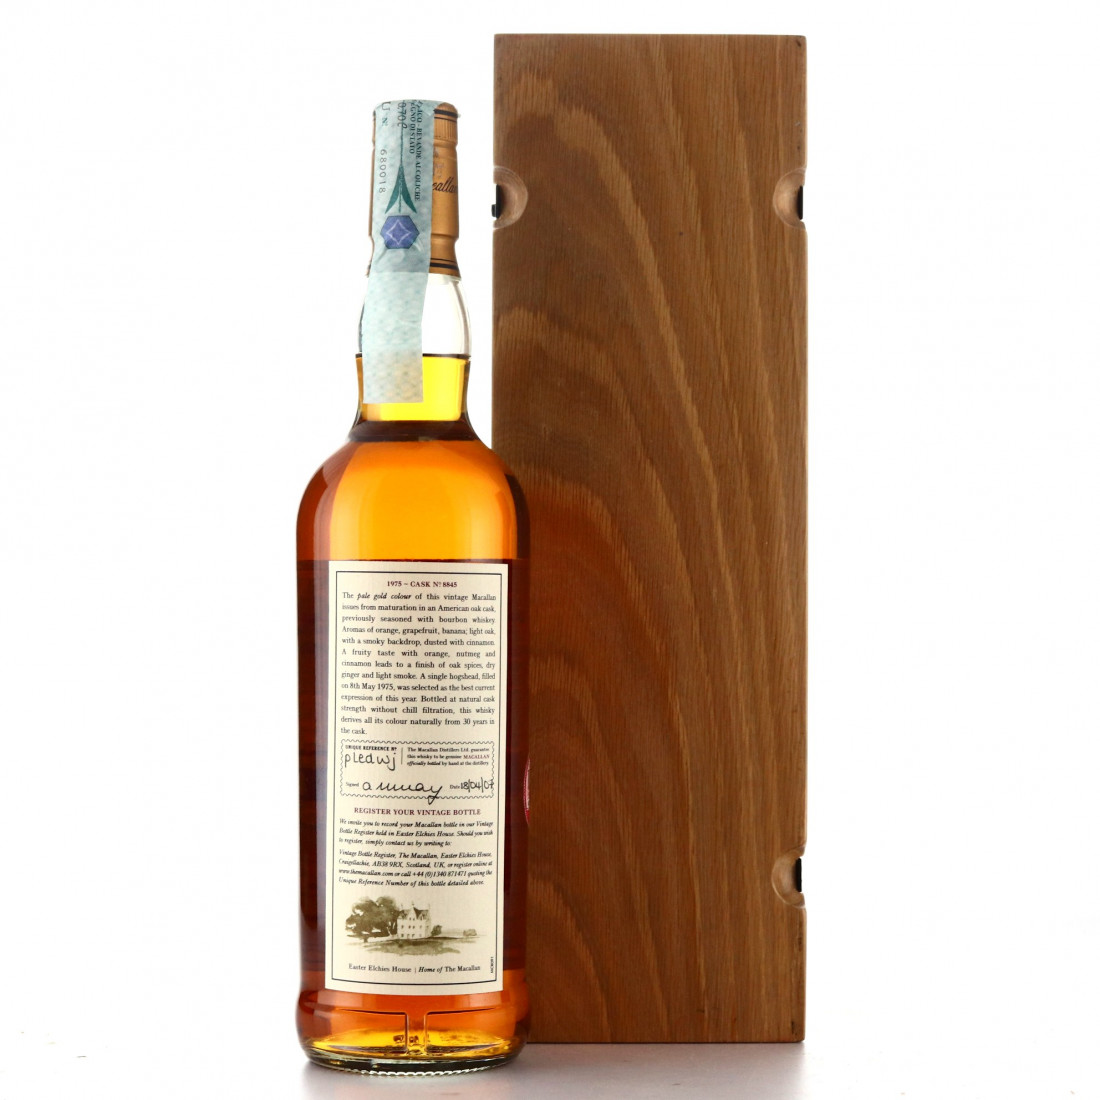 Macallan 1975 Fine and Rare 30 Year Old